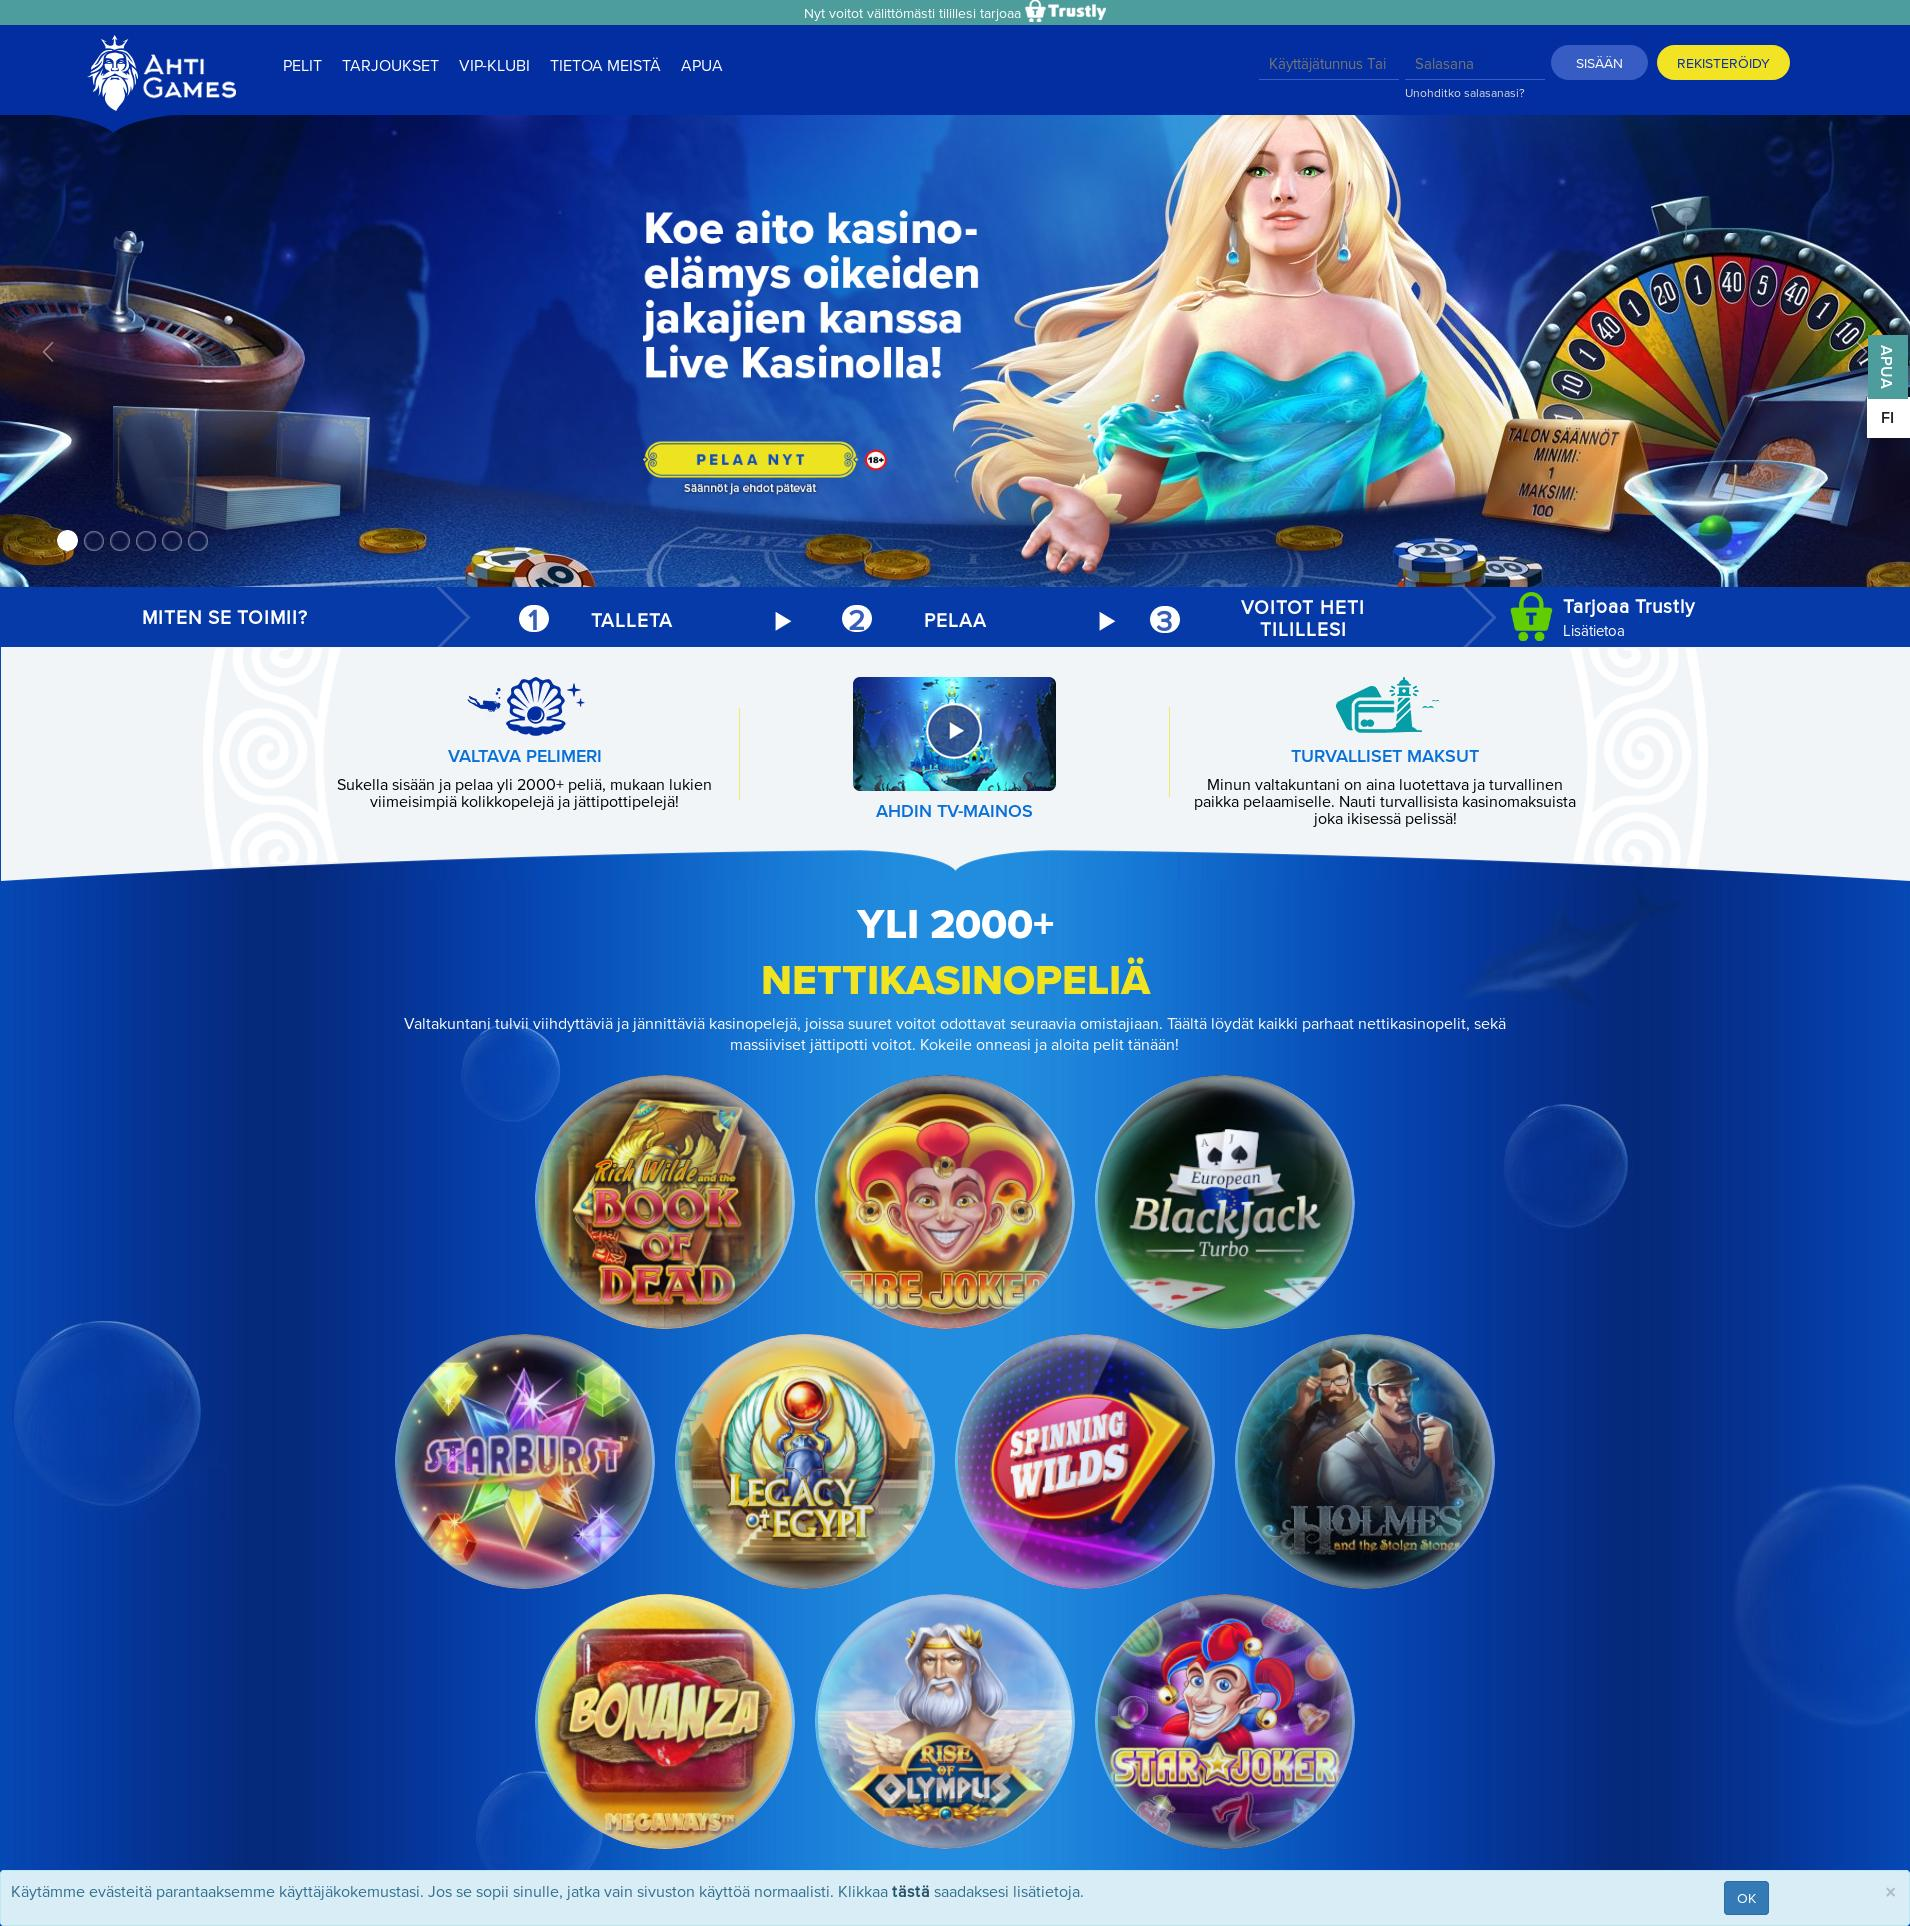 Casino screen Lobby 2019-11-20 for Finland